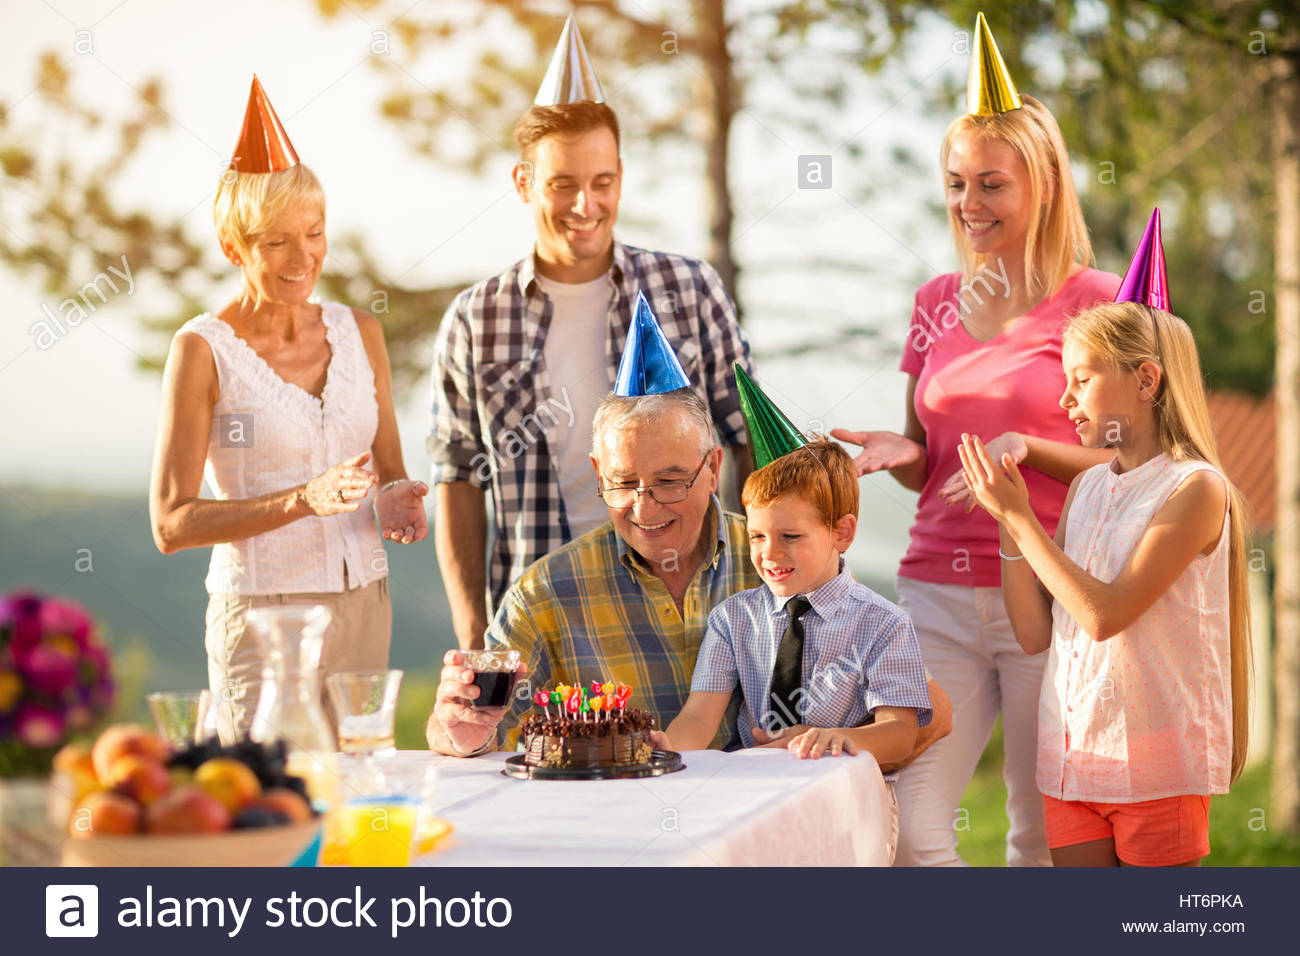 picture of birthday party celebration ; grandfather-and-grandson-on-birthday-party-celebration-with-family-HT6PKA